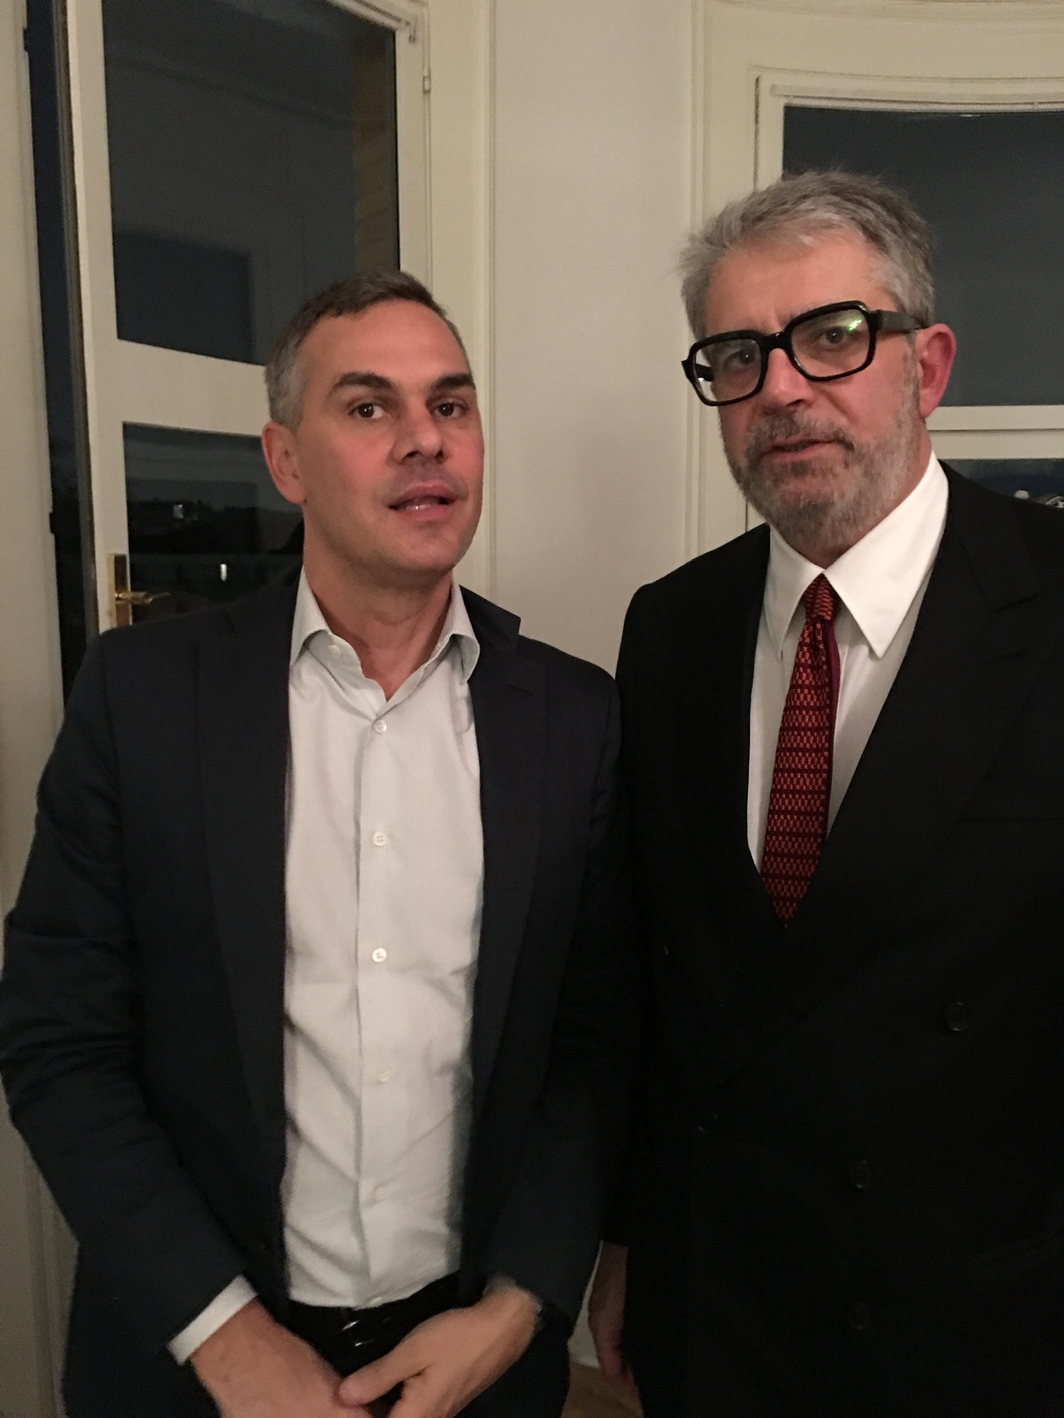 Massimiliano Gioni, Artistic Director Fondazione Trussardi and Associate Director and Director of Exhibitions at the New Museum of Contemporary Art, New York, with gallerist Gio Marconi.